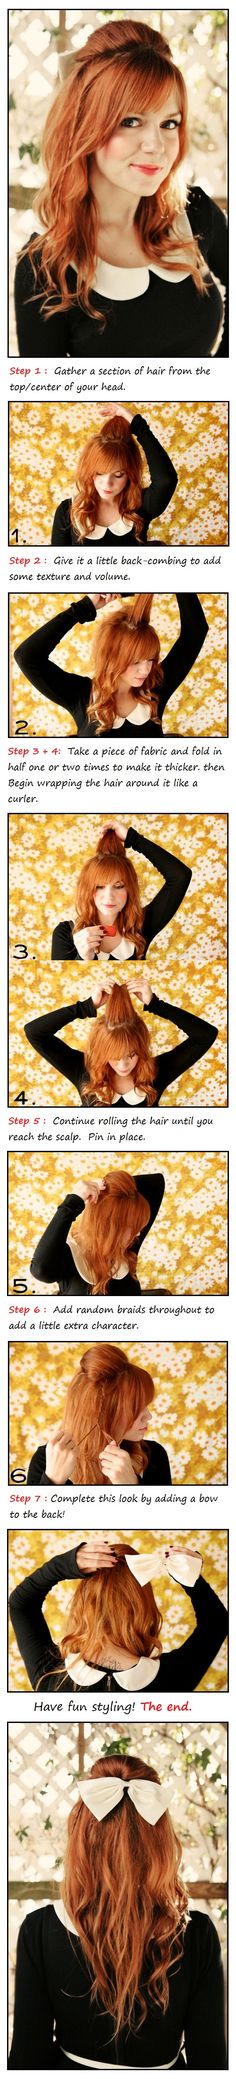 I'll have to try this! - Tried this today. I tried three times to get a nice smooth bump but every time it was lumpy and uneven. I didn't tease that much, and my hair is only an inch or two shorter than the model's. I am going to try it again before writing it off as photoshoot magic (when something works long enough to photograph but would fall apart if you actually did it in real life).